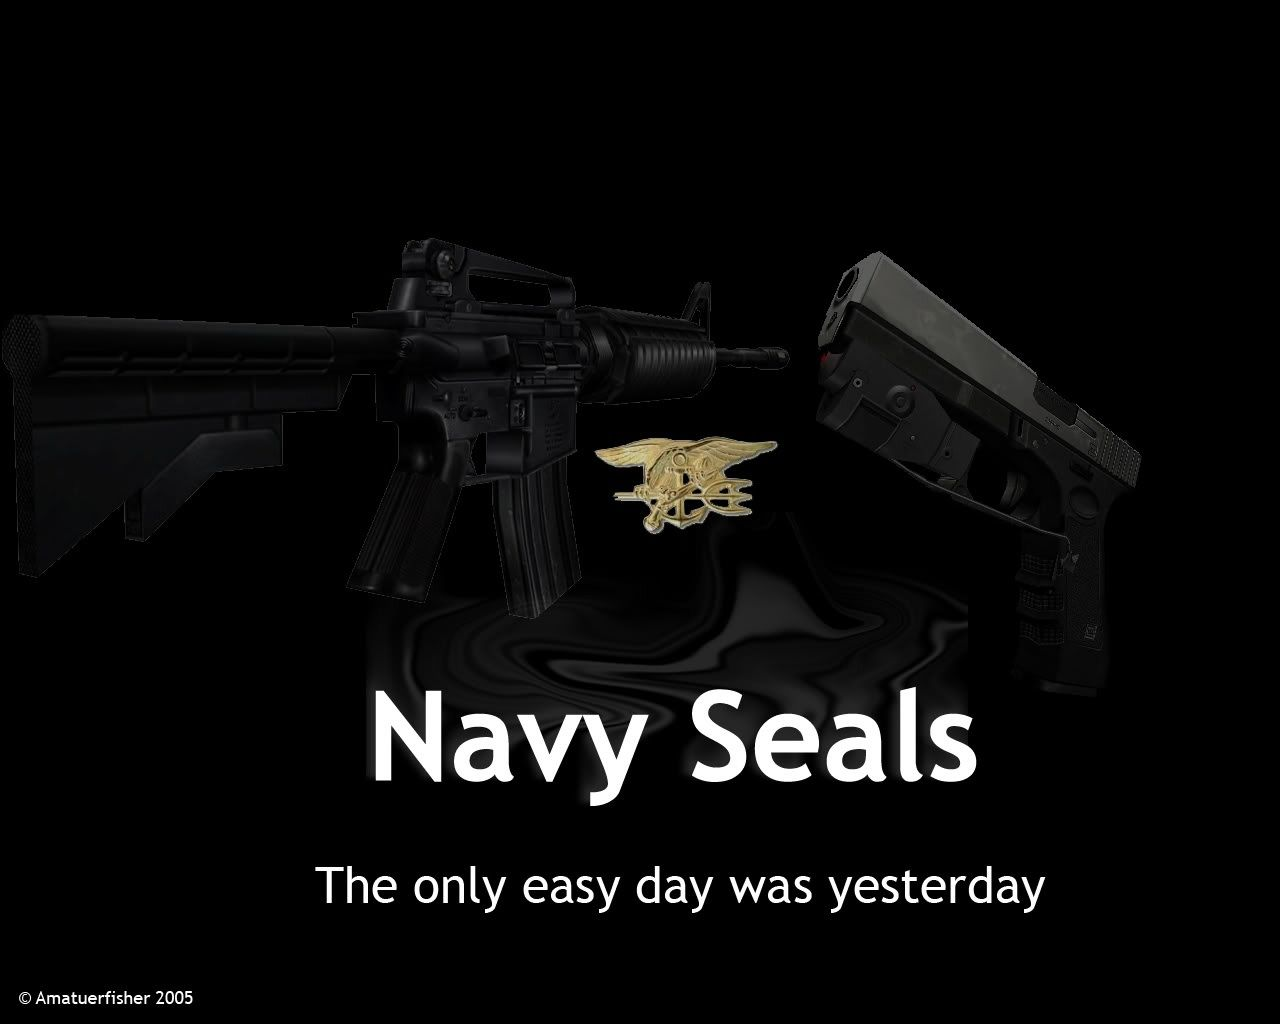 Navy Seal Wallpapers HDQ Navy Seal Images Collection for Desktop 1280x1024